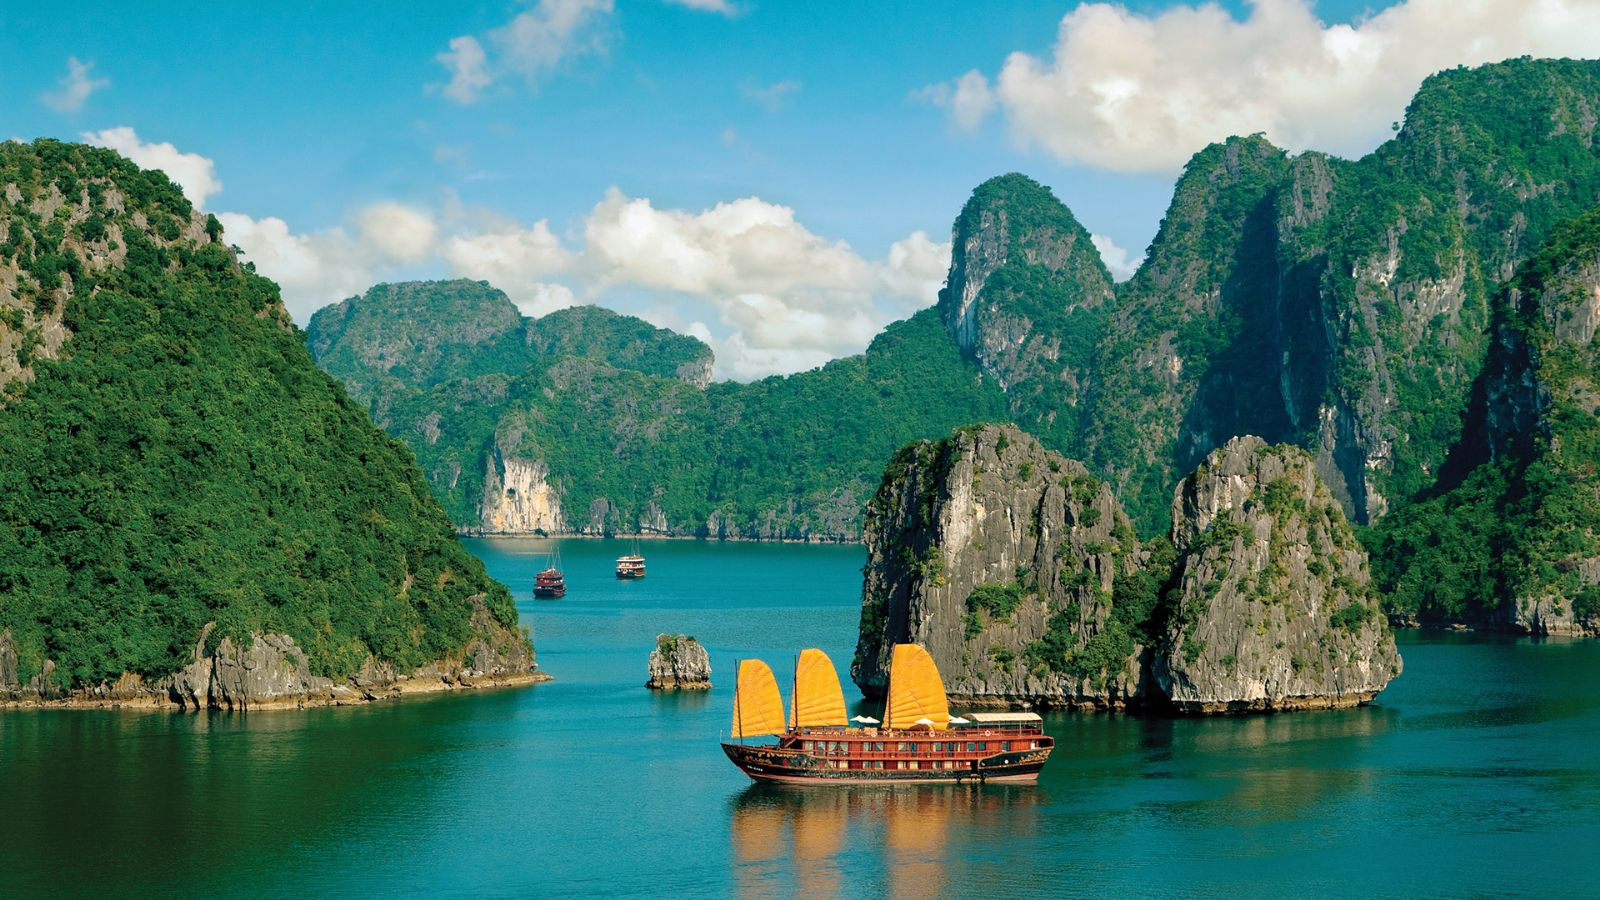 ALOVA PREMIUM CRUISES - HALONG BAY 1 DAY TOUR ~ Halong